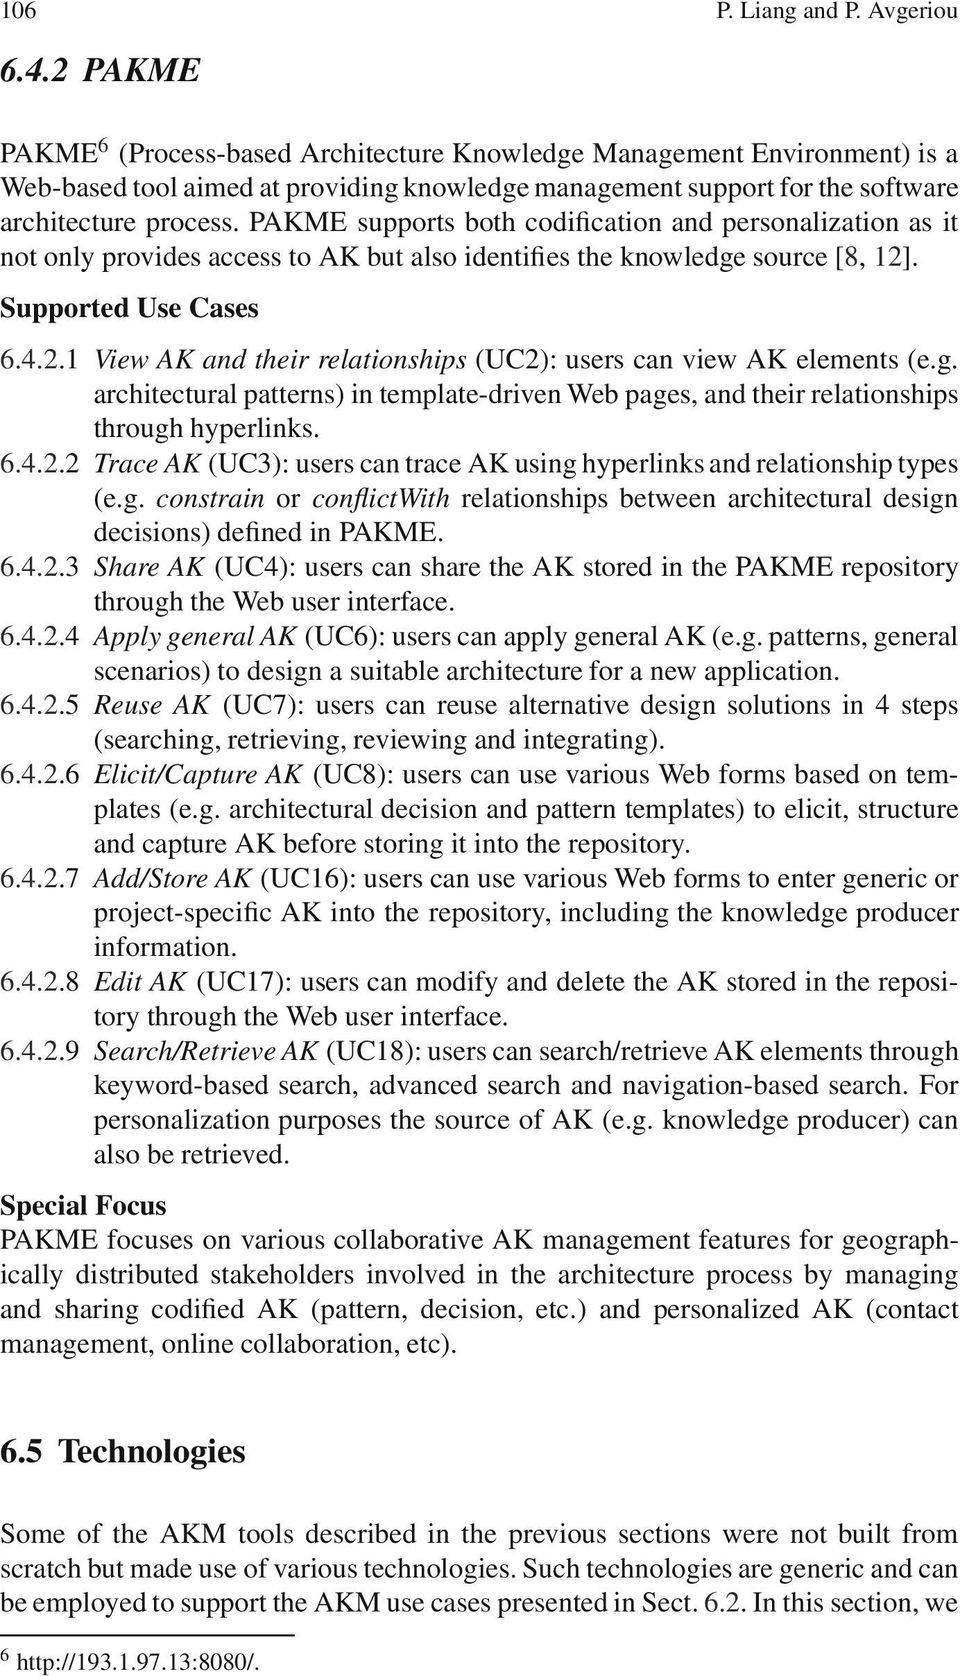 PAKME supports both codification and personalization as it not only provides access to AK but also identifies the knowledge source [8, 12]